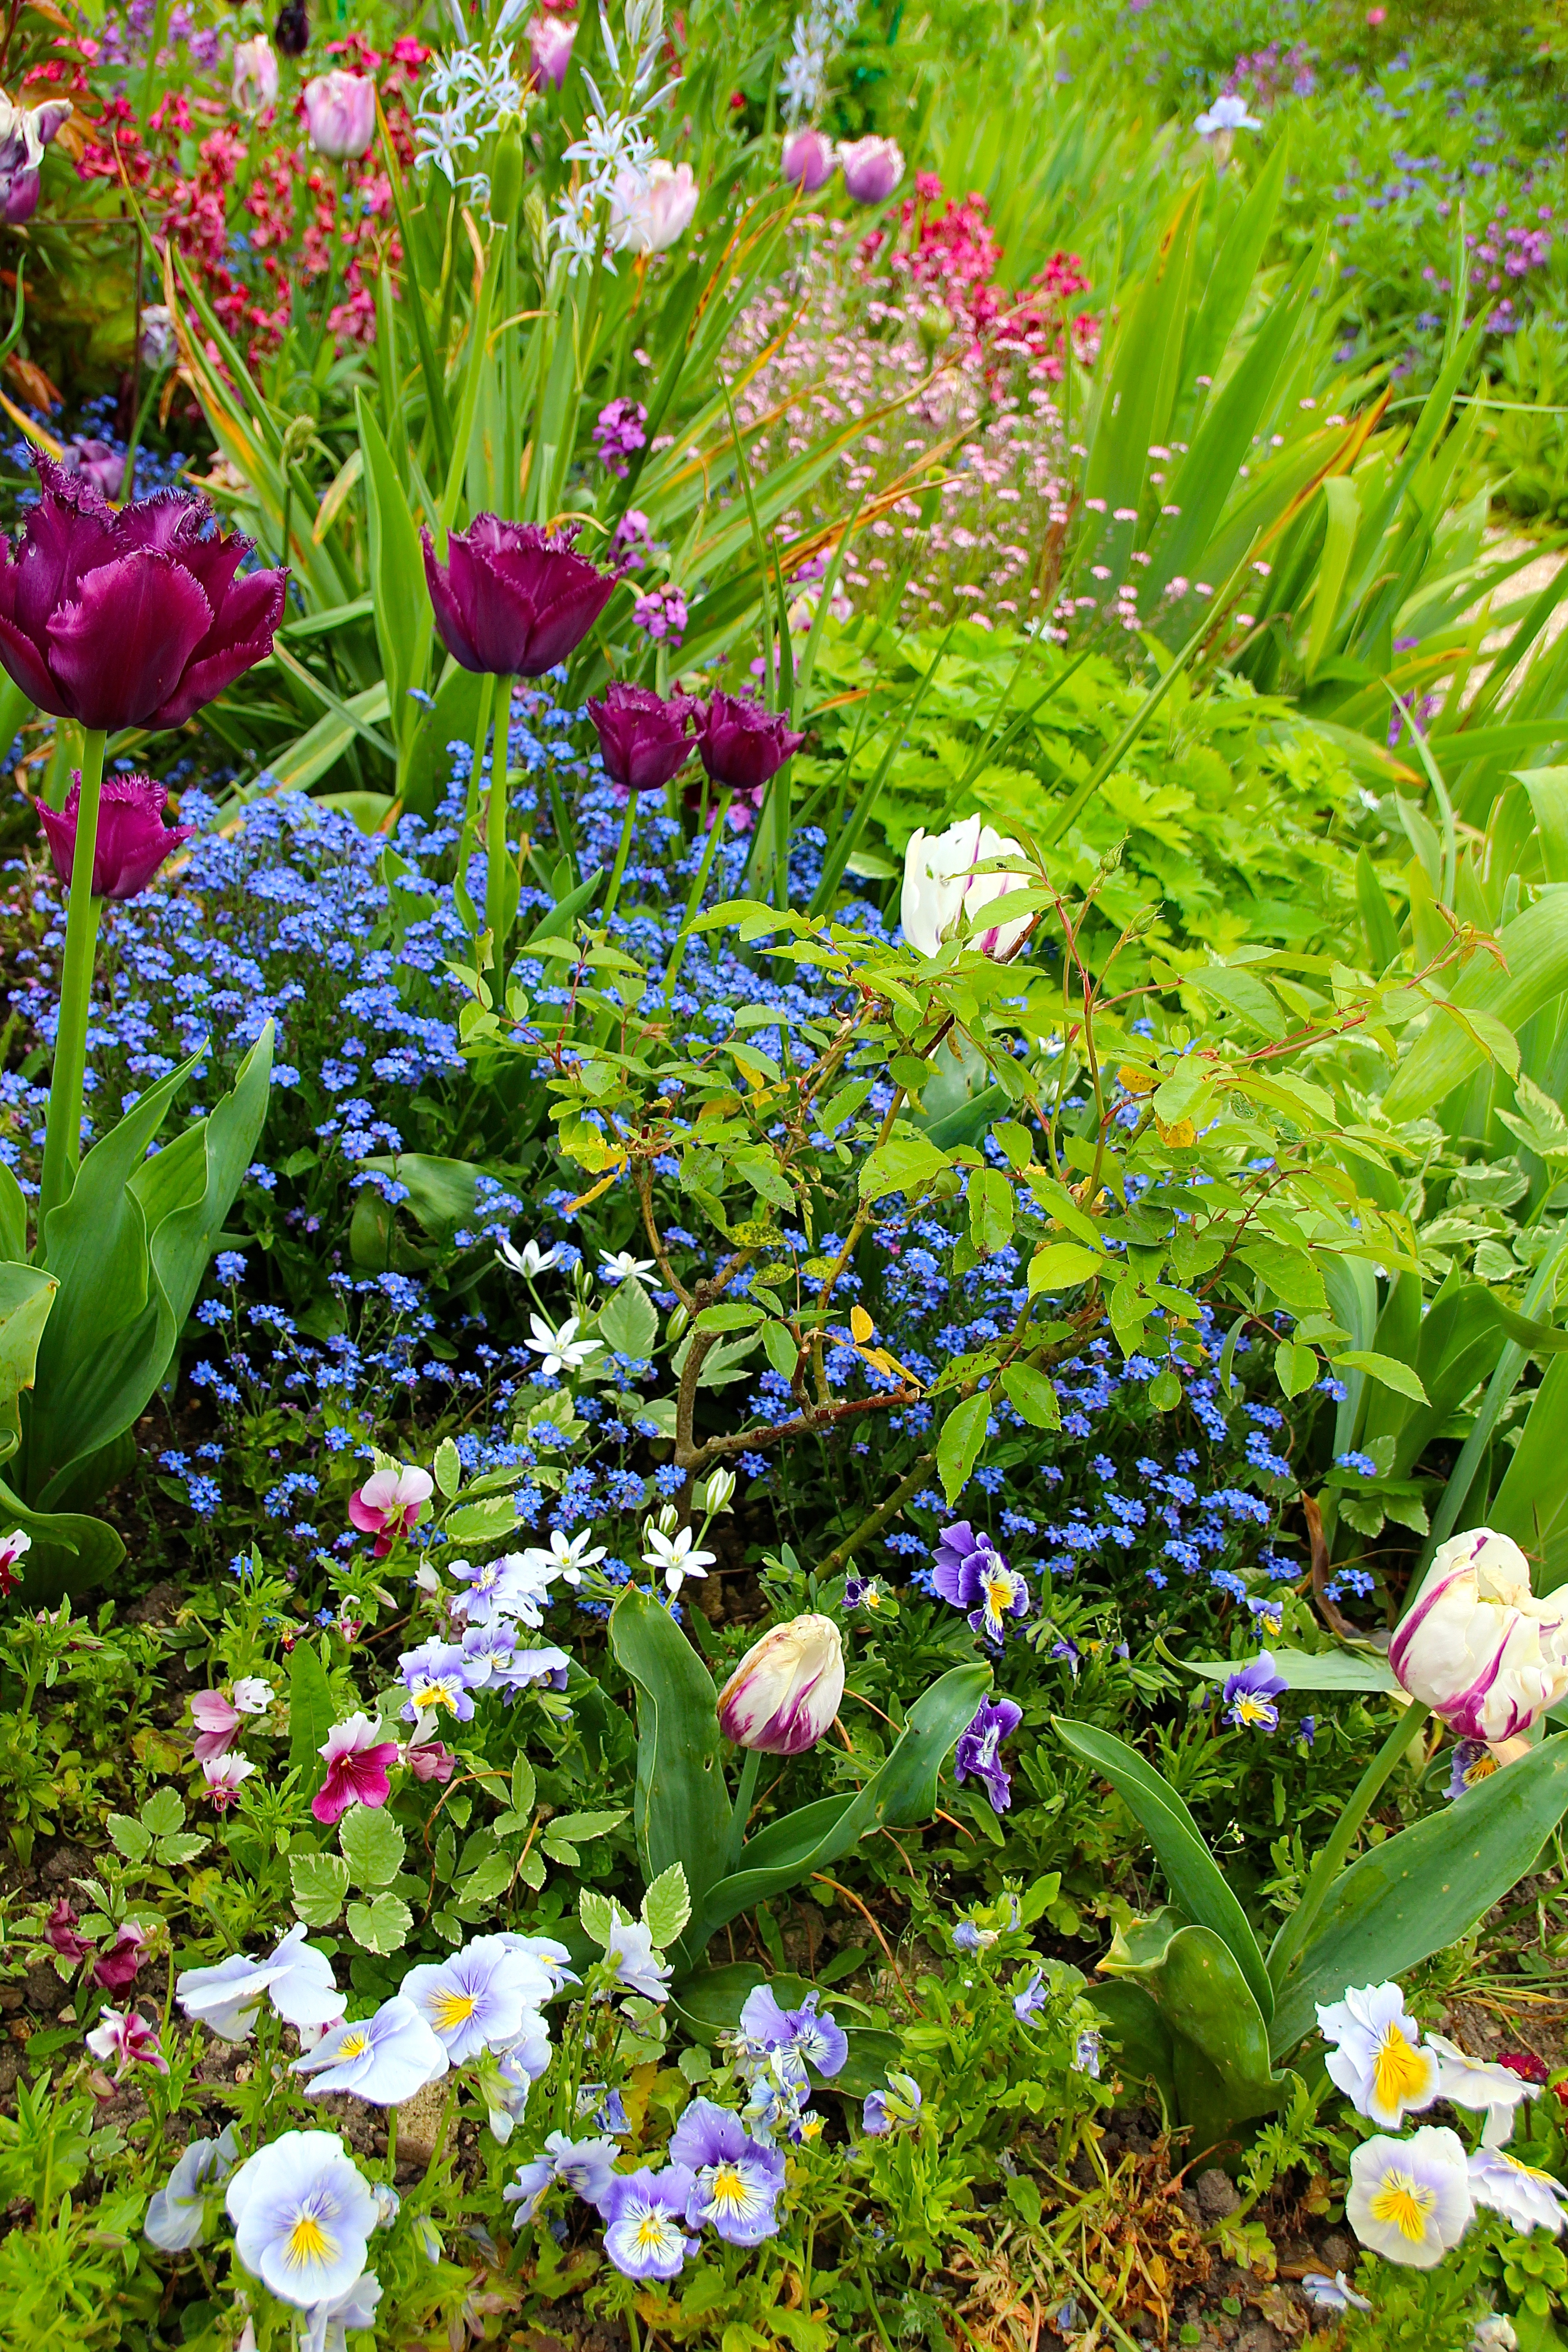 Spring flowers blooming at Giverny. France. 05.09.16. 10